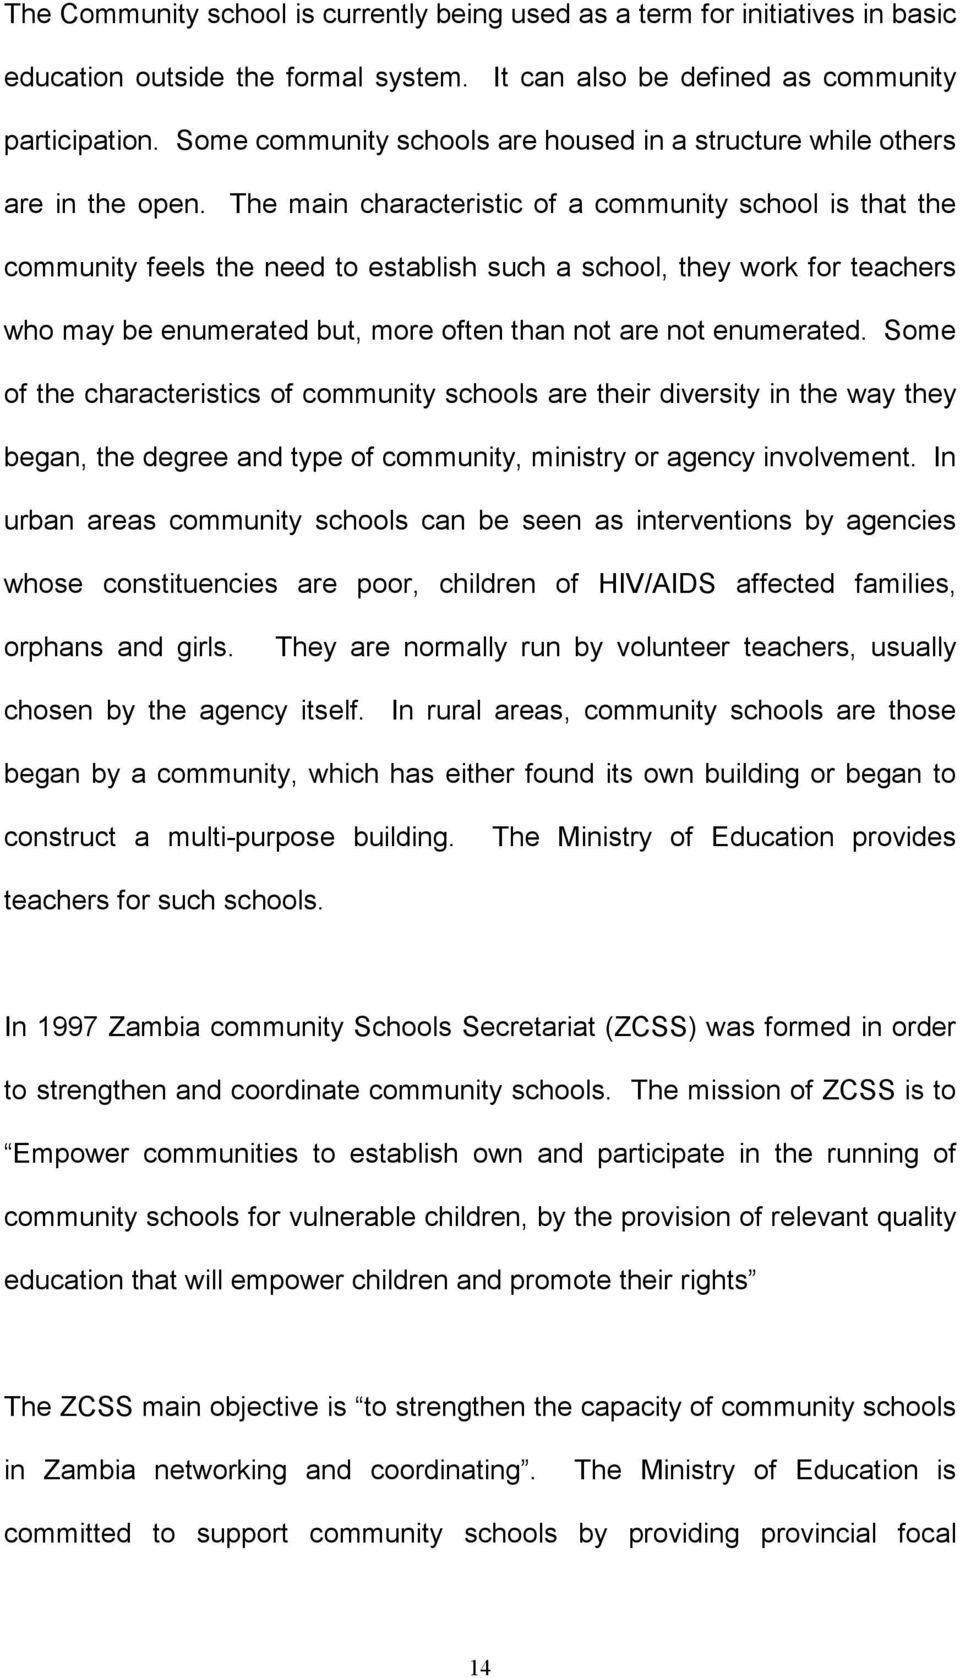 The main characteristic of a community school is that the community feels the need to establish such a school, they work for teachers who may be enumerated but, more often than not are not enumerated.